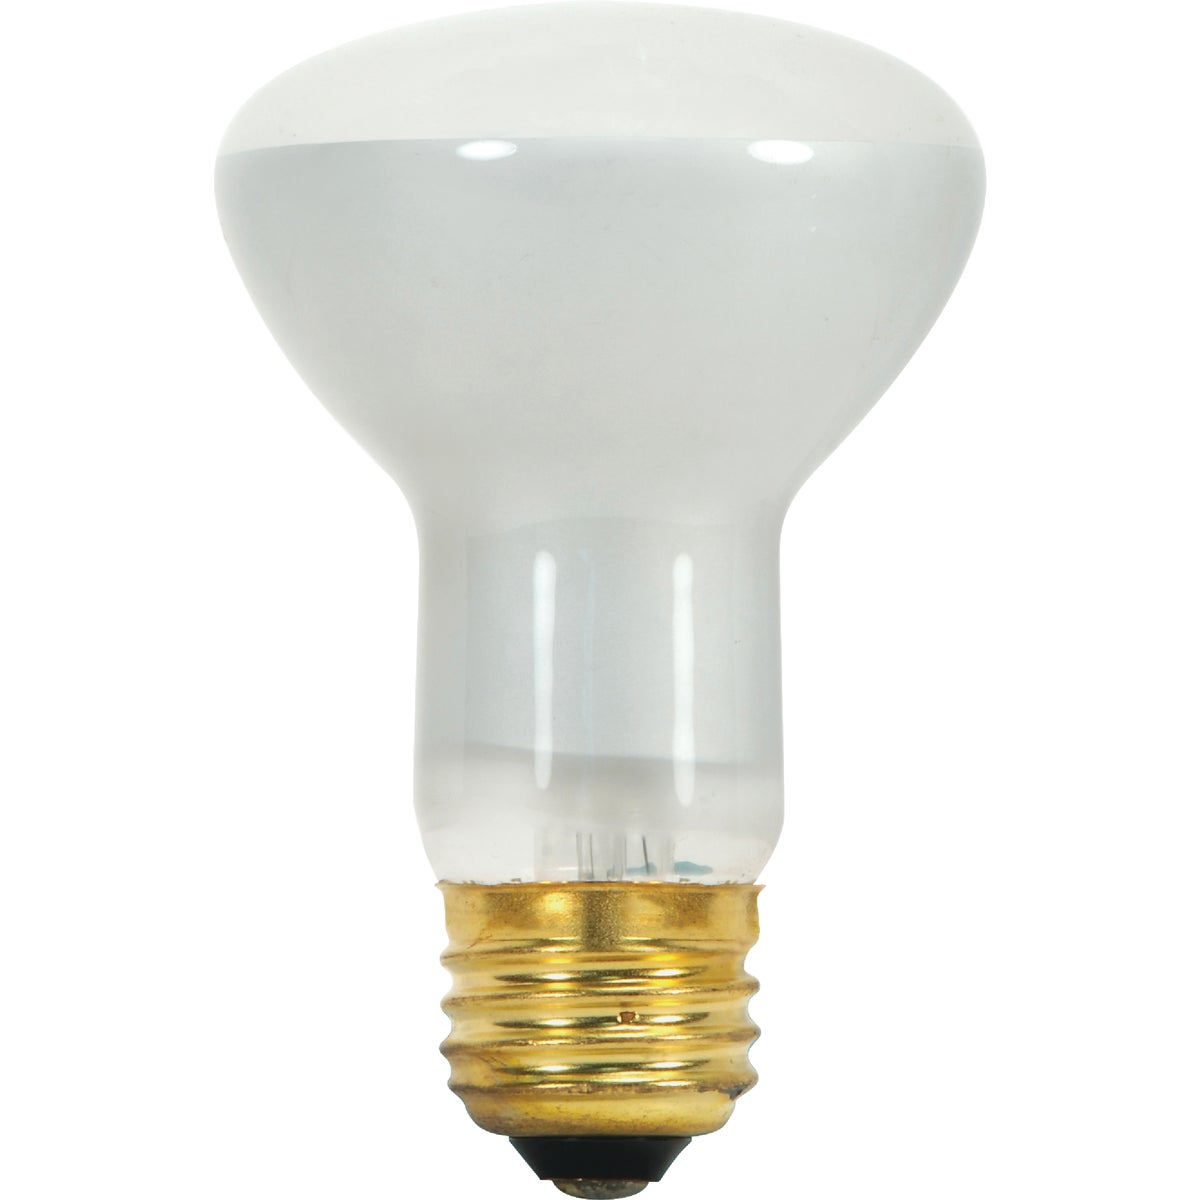 45W REFLECTOR BULB - 14878 45R20MI by G E Lighting